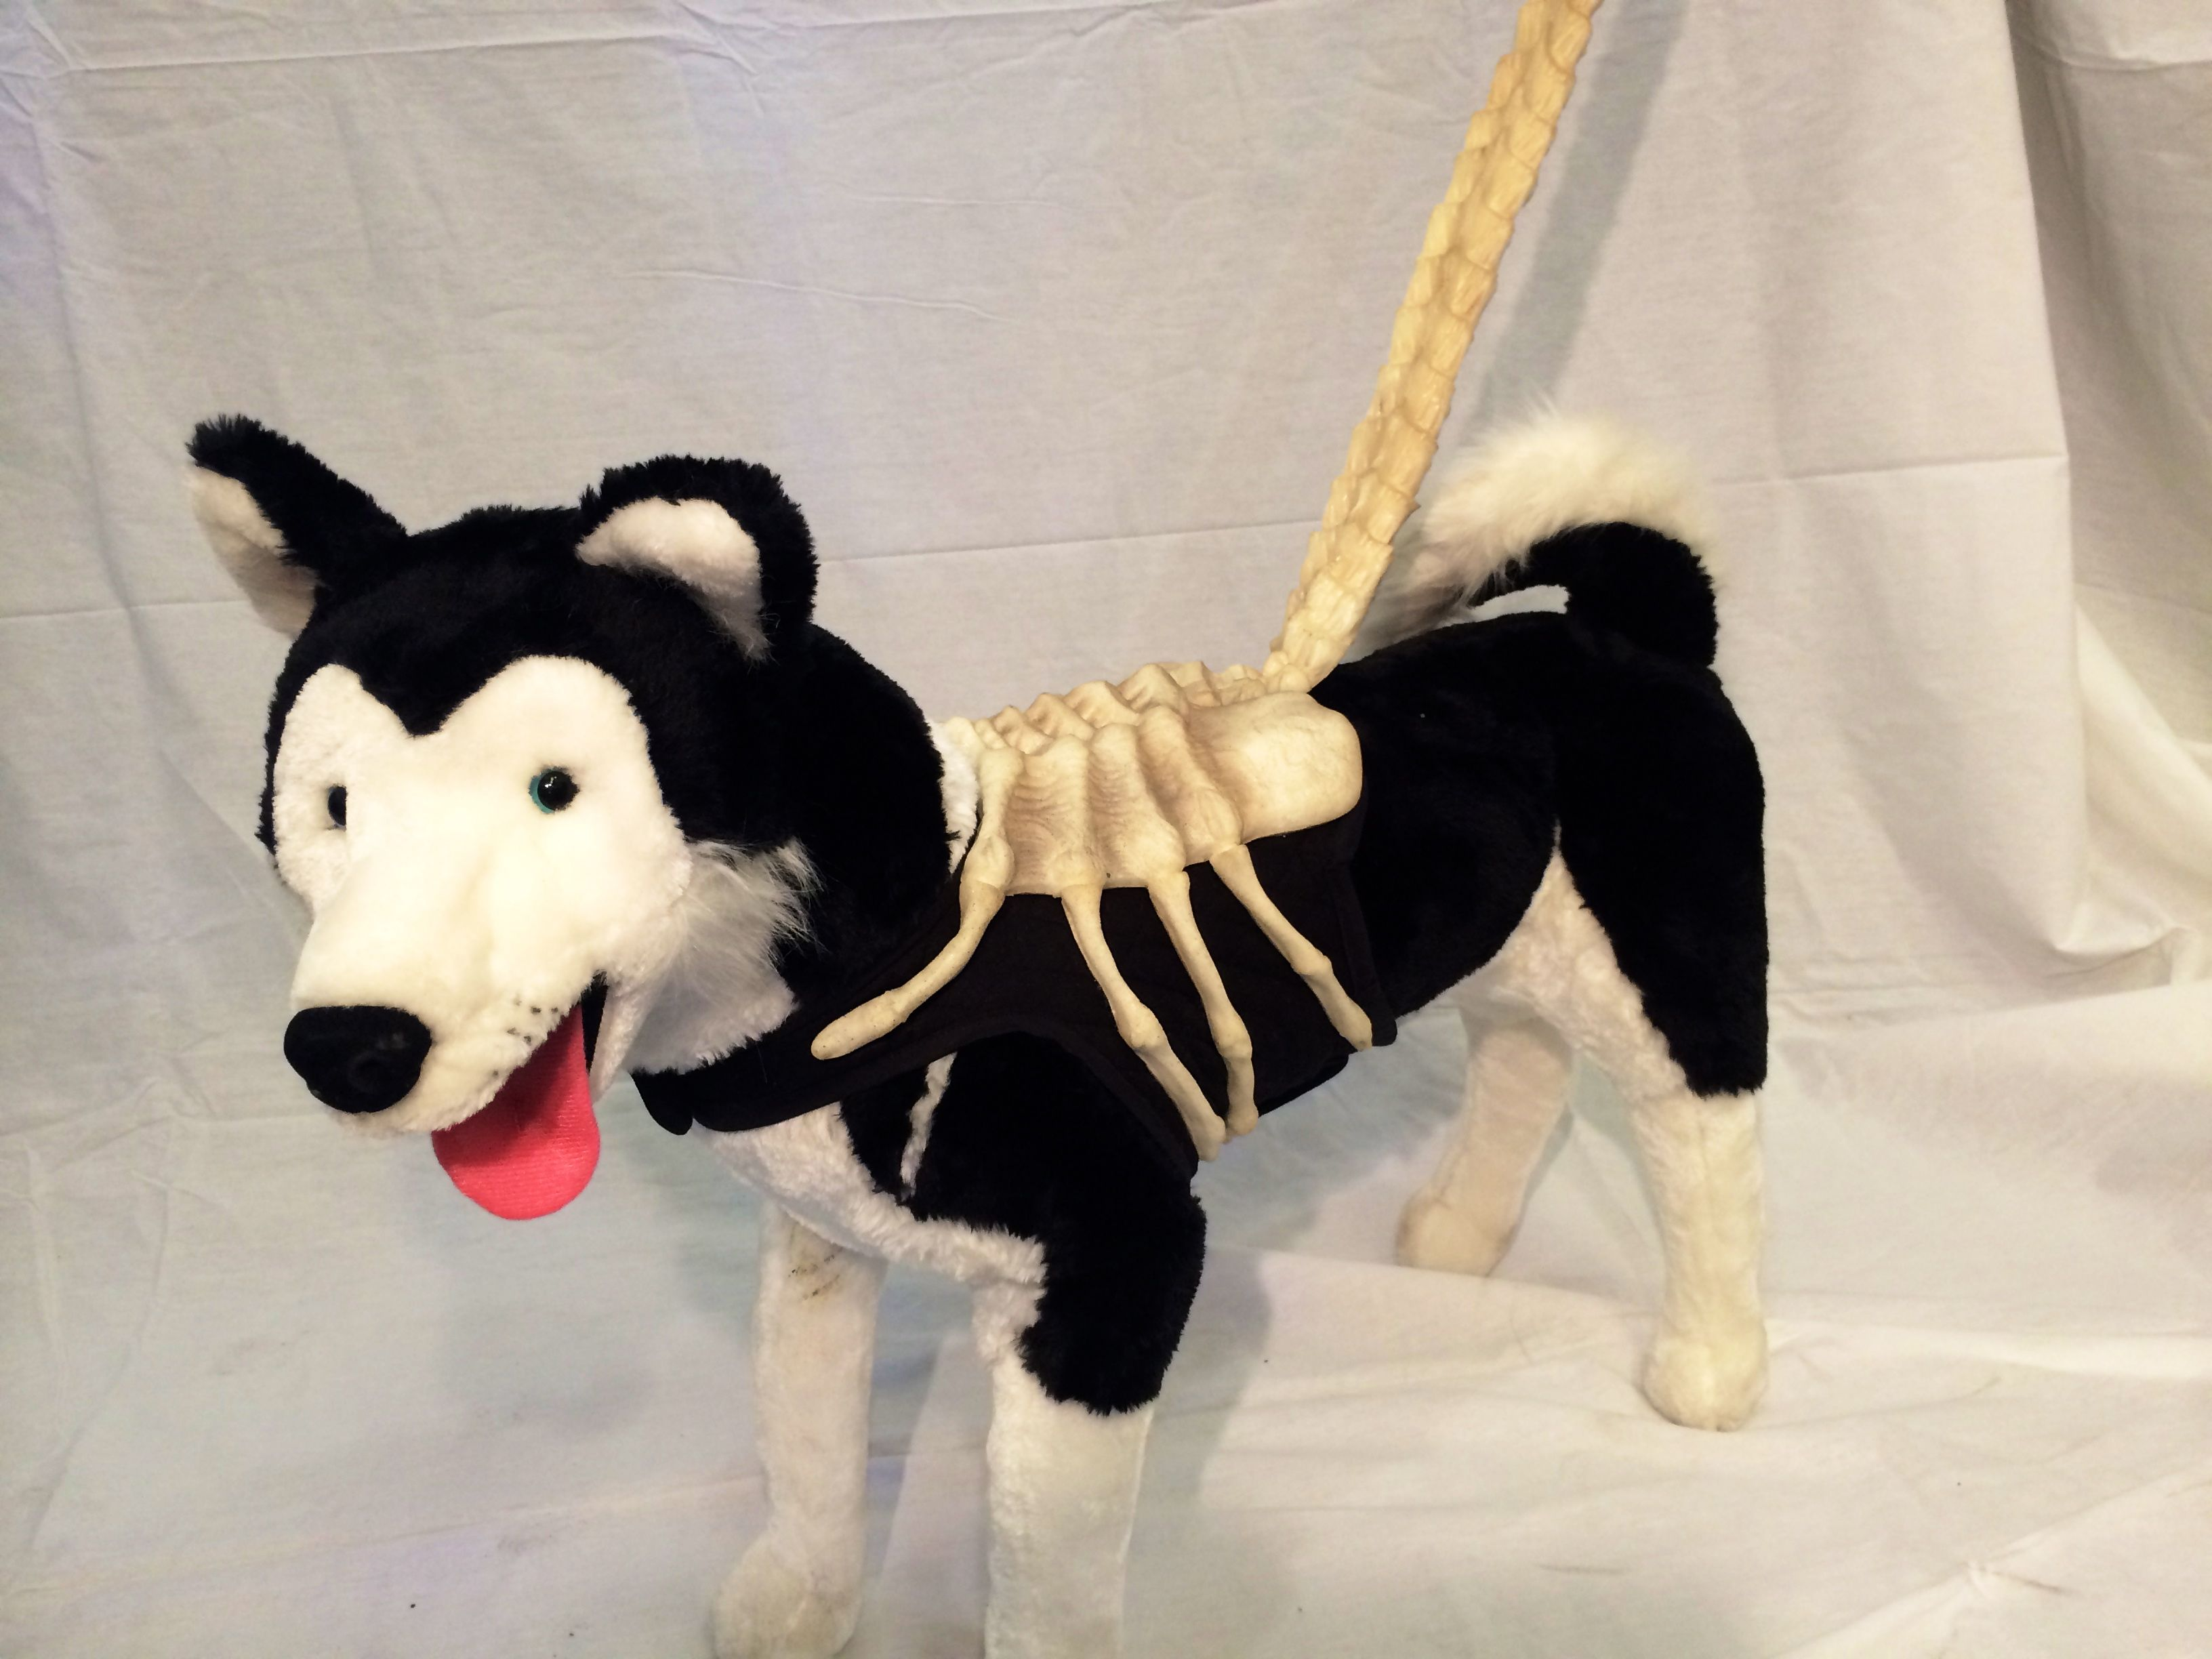 Alien Face Hugger Dog Leash With Harness Designed To Fit A Small To Medium Sized Dog 15 35 Pounds This Leash Connects With V Dog Leash Smart Dog Your Dog